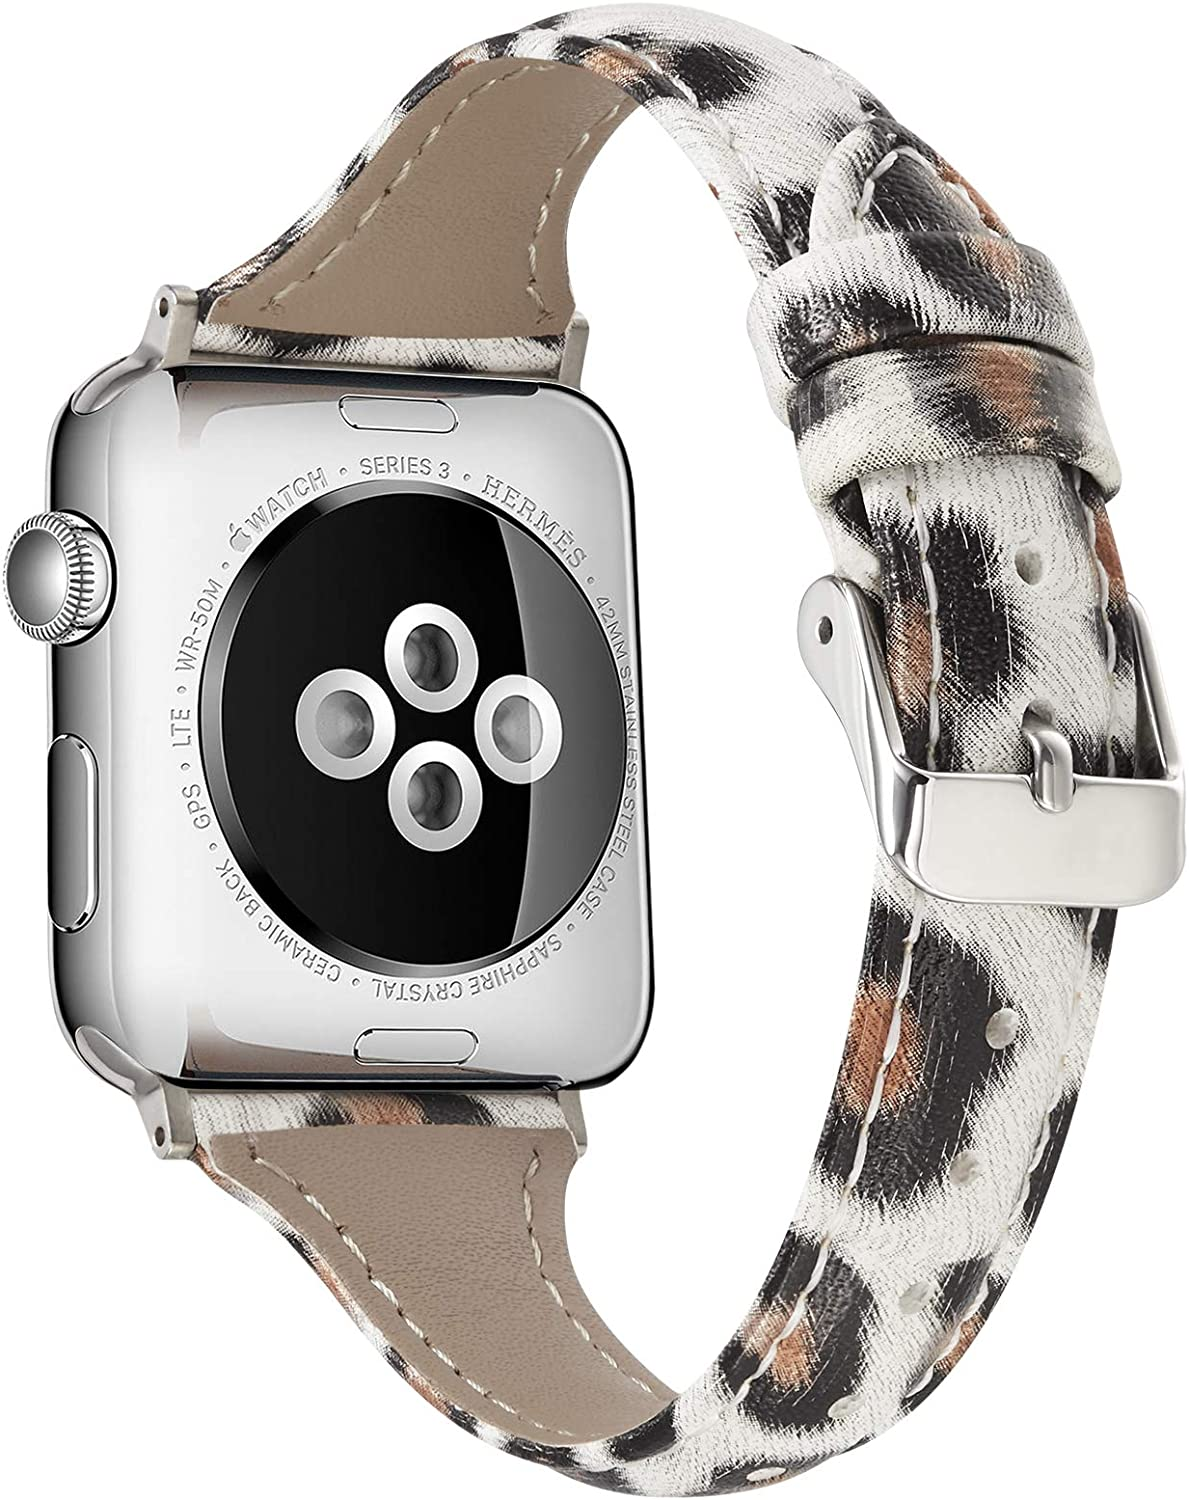 Genuine Leather Compatible with Apple Watch Slim Leopard Bands 38mm 40mm for iWatch SE Womens Strap Classic Wristband Bling Glitter Strap Series 6 5 4 3 2 1 (Leopard 38/40mm)